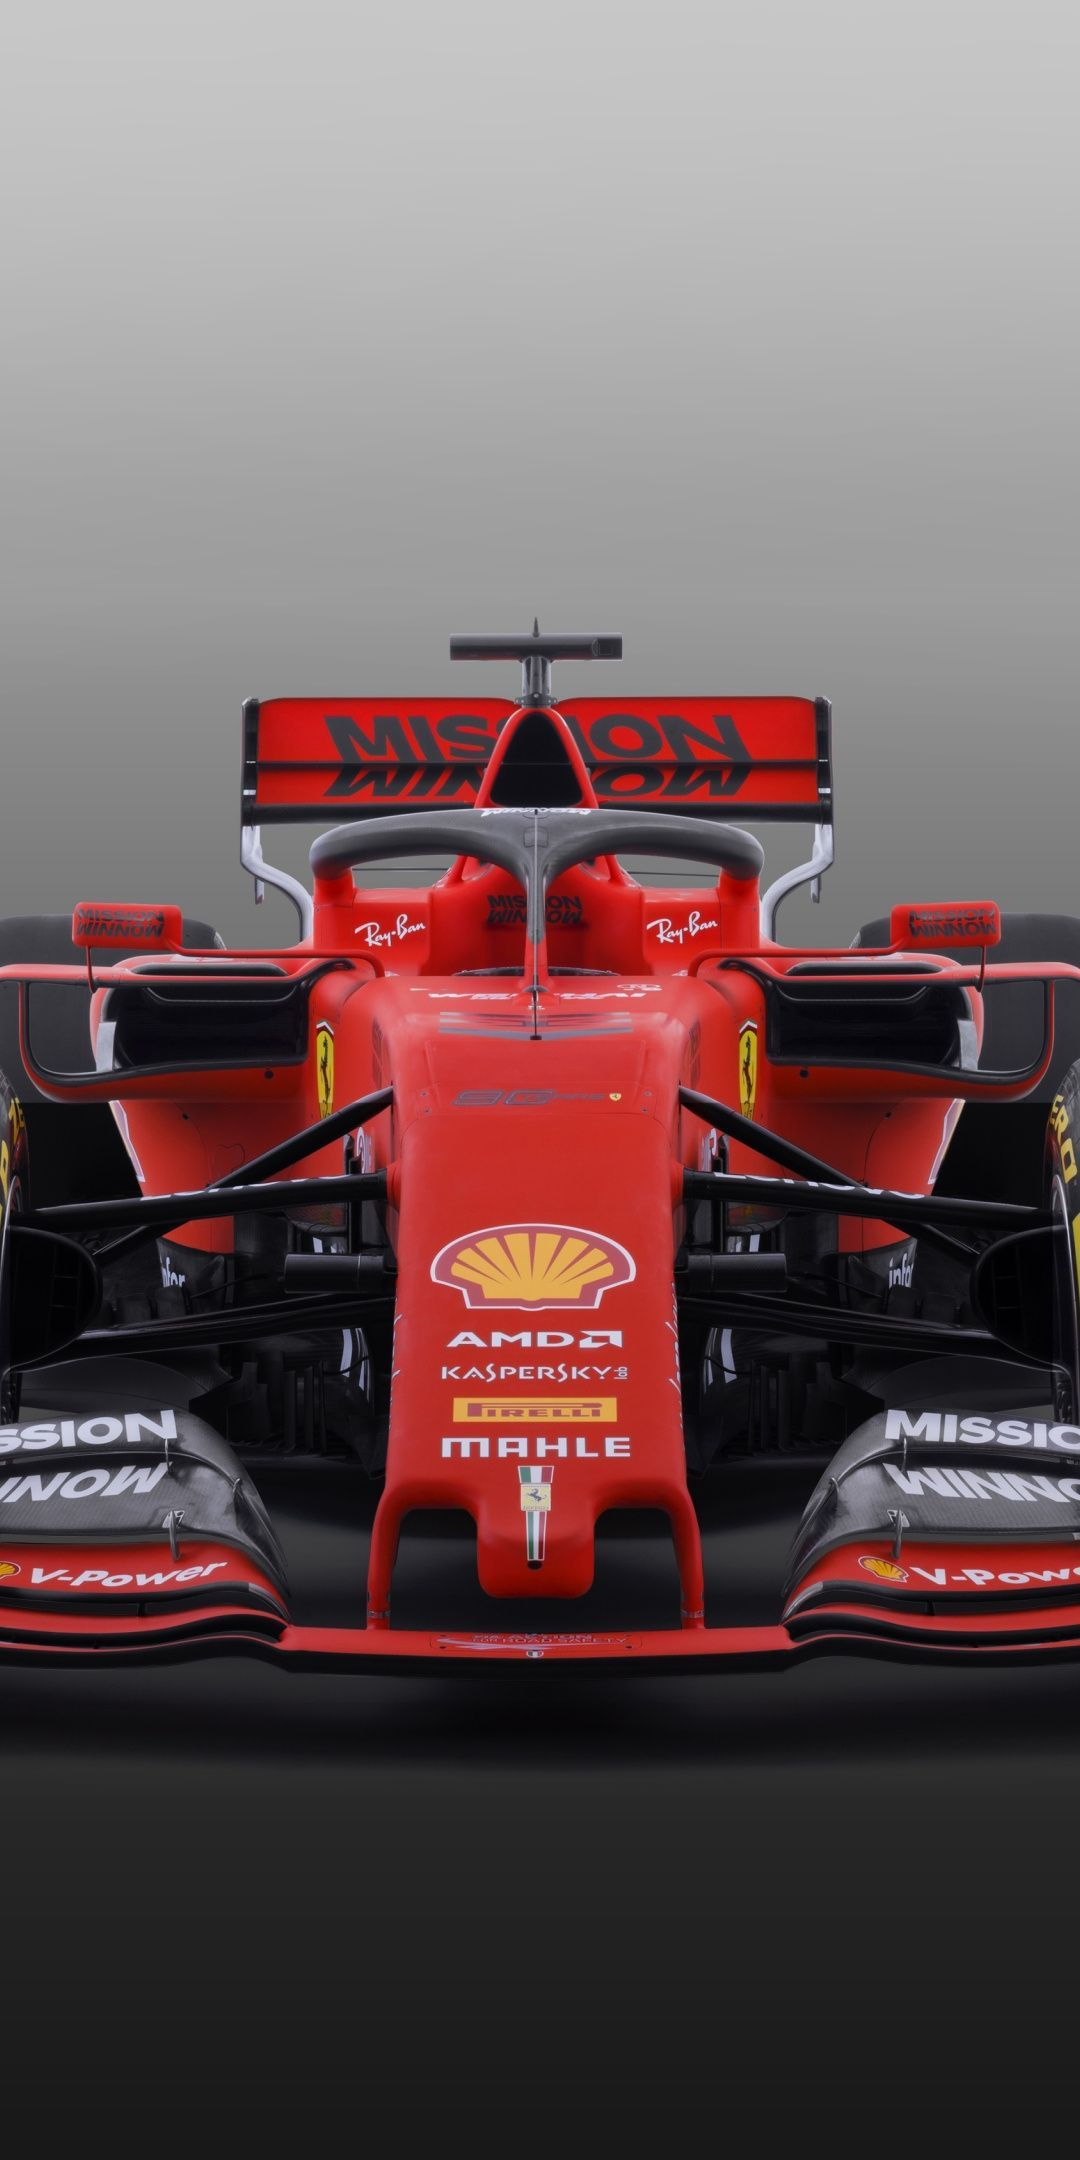 2020 Ferrari Sf90 F1 Formula One Car 1080x2160 Wallpaper In 2020 Ferrari F1 Ferrari Sports Car Photos